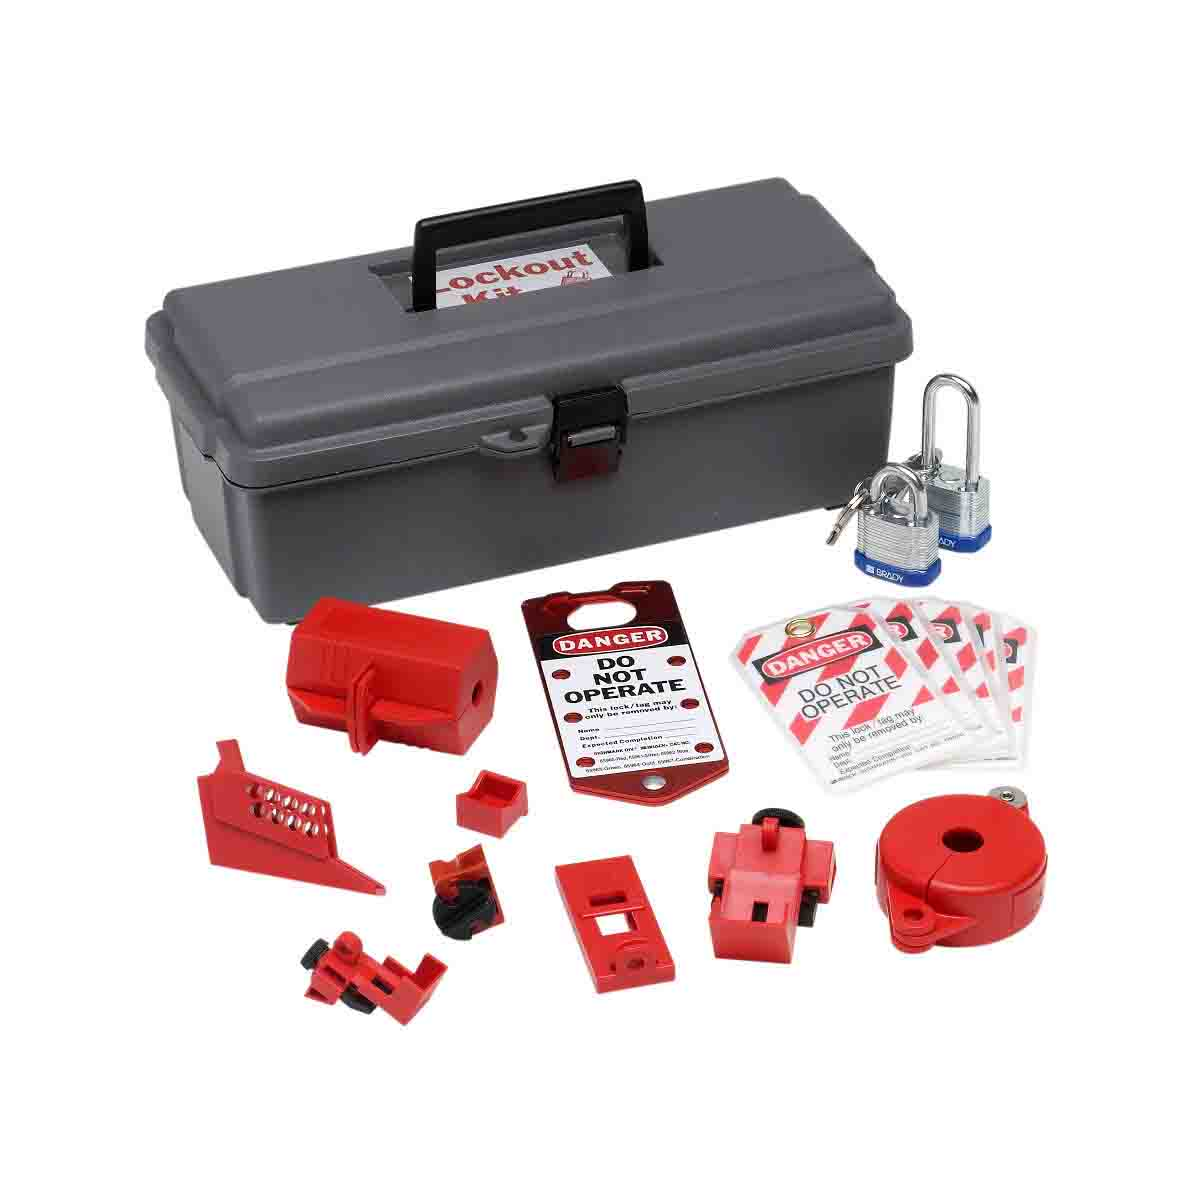 Brady® 65289 Electrical/Mechanical Risk Lockout Toolbox, 14 Pieces, 5-1/4 in H x 14 in W x 6-1/2 in D, Language: English